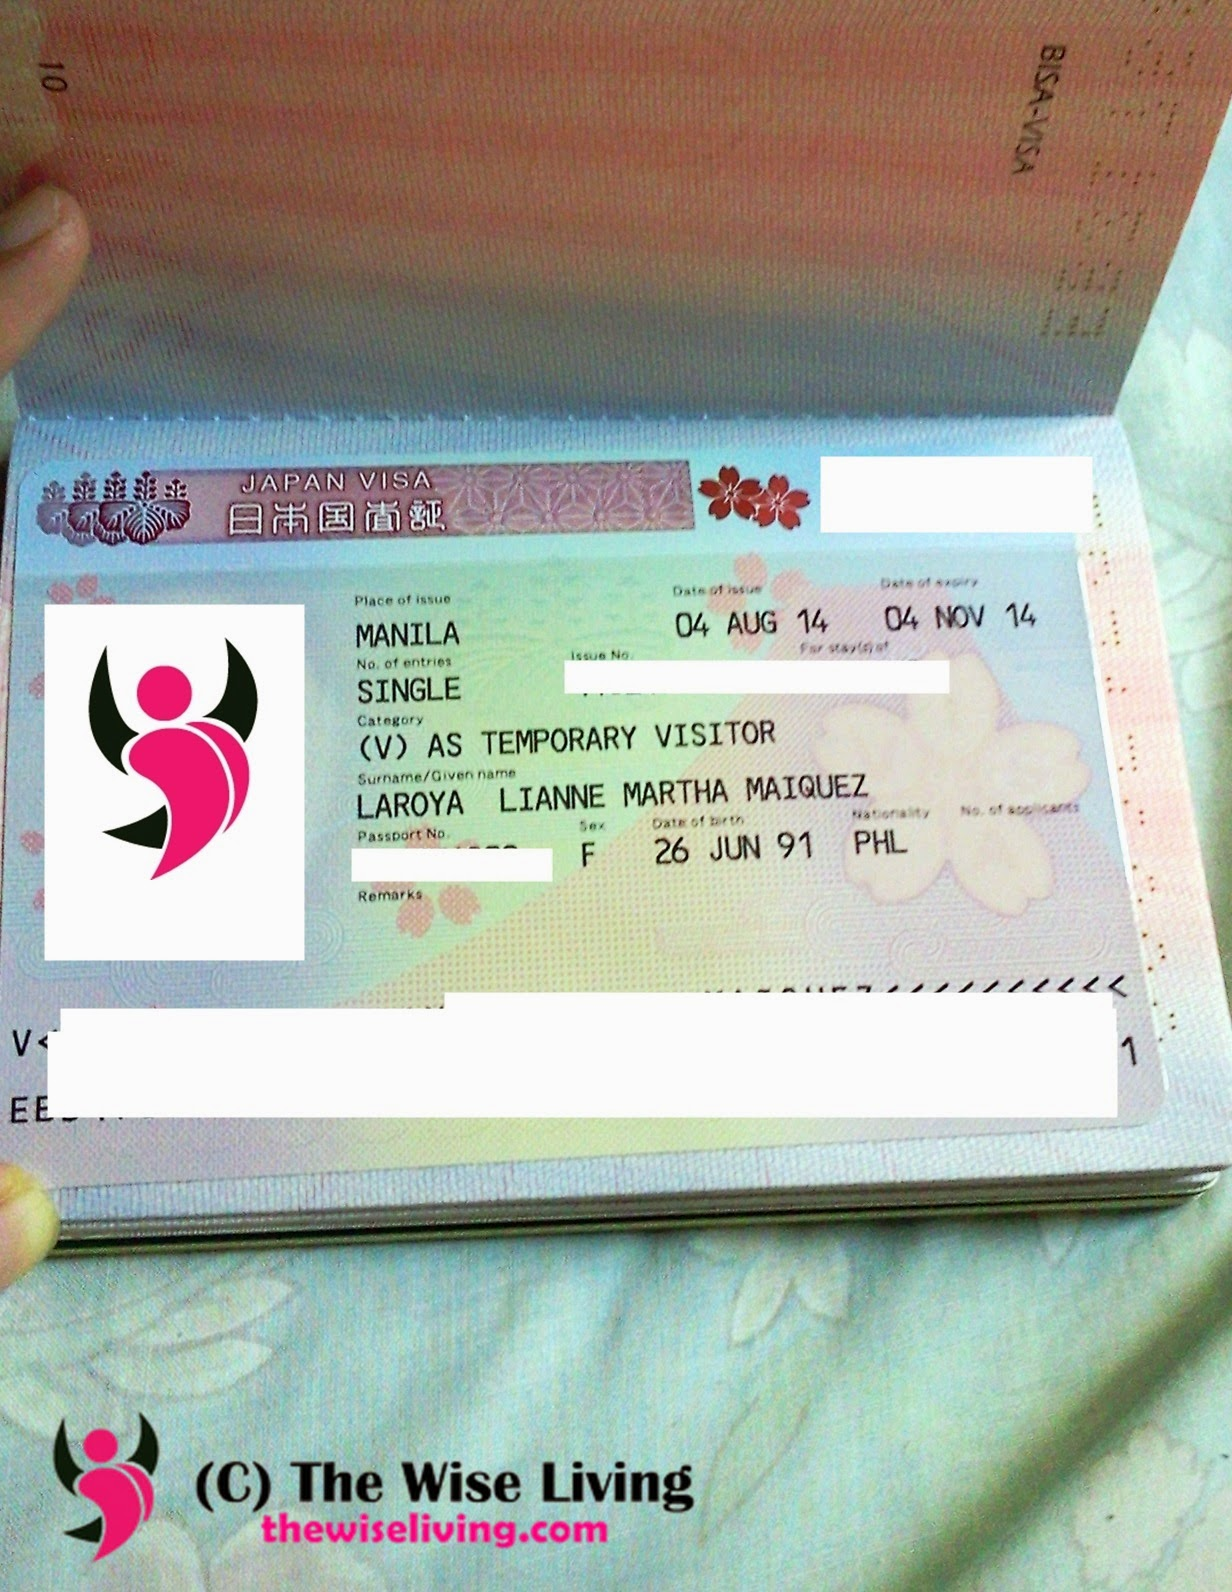 Japan visa guide japan tourist visa application for filipinos in apply and get your japanese tourist visa in the philippines japan visa application yadclub Images